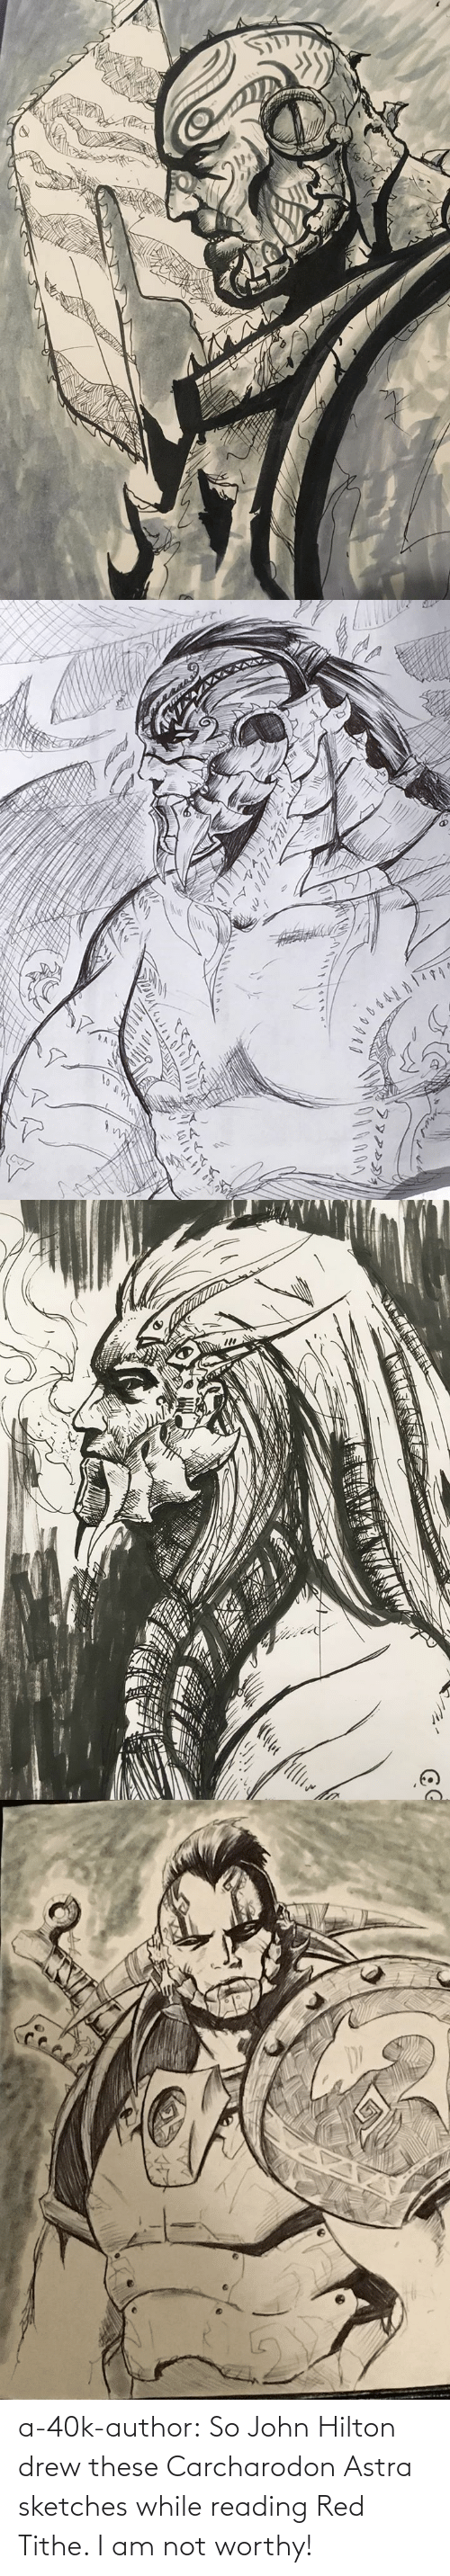 Tumblr, Blog, and Hilton: a-40k-author:  So John Hilton drew these Carcharodon Astra sketches while reading Red Tithe. I am not worthy!